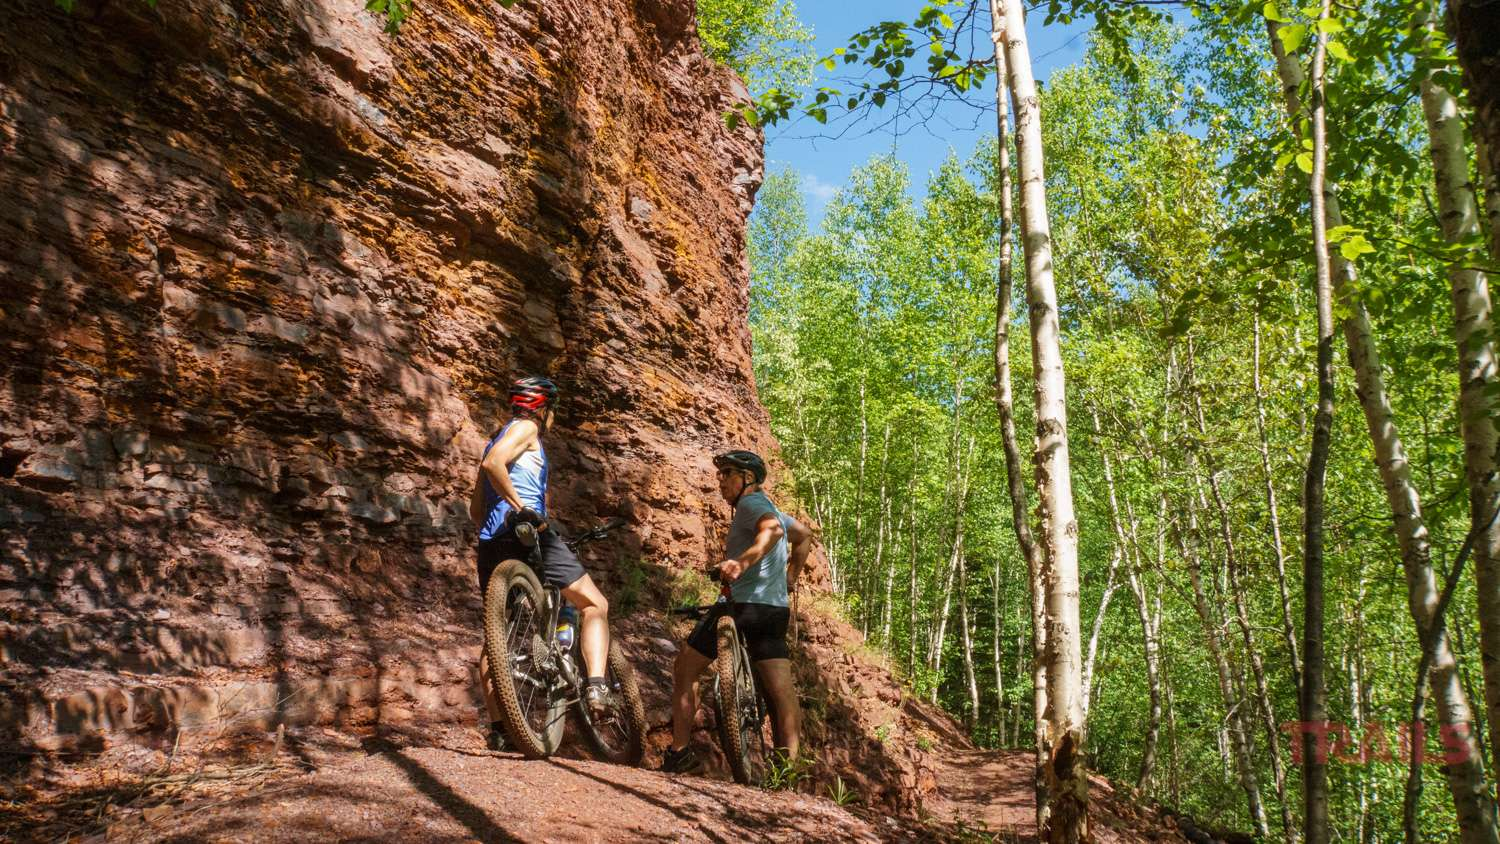 Mountain Bikers on a path